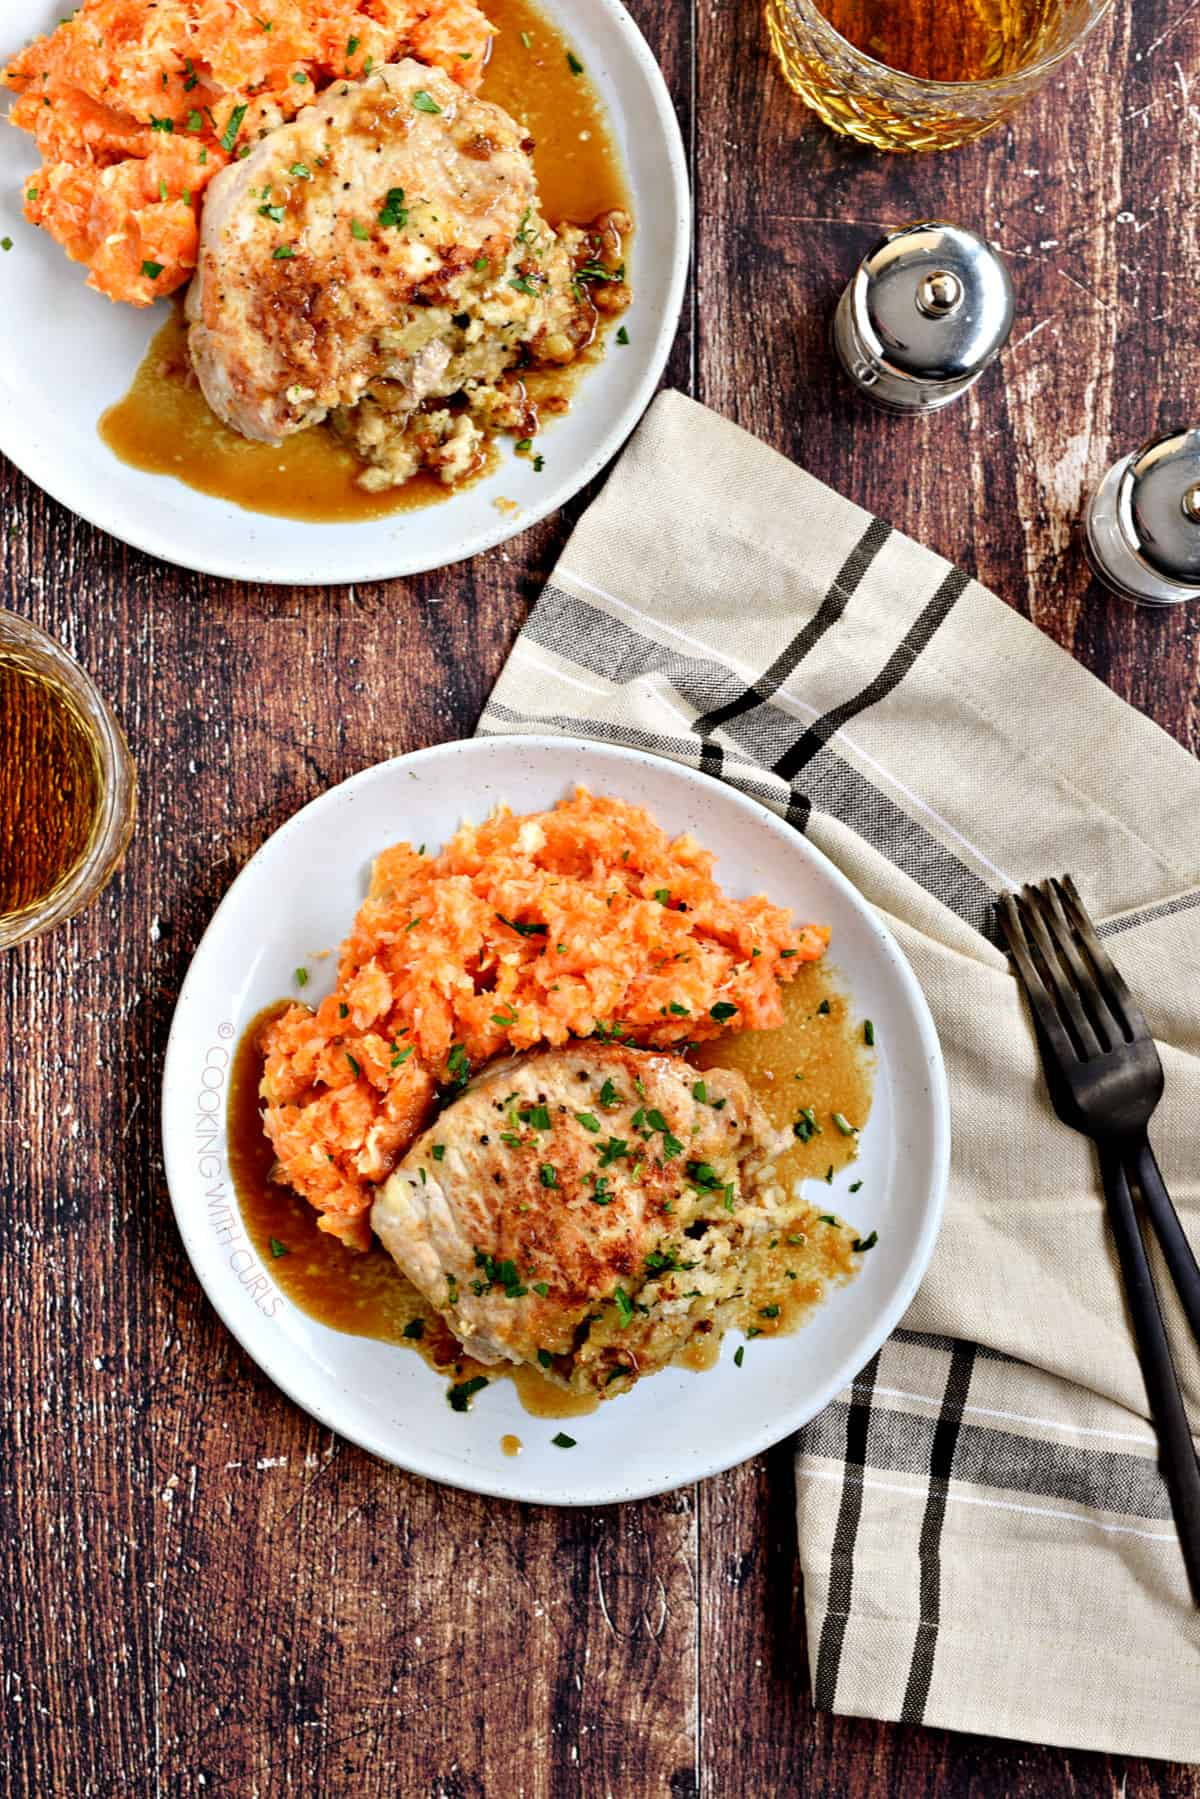 Looking down on two plates of A stuffed pork chop covered in an apple-bourbon sauce and served with carrot parsnip mash with a glass of whisky in the background.